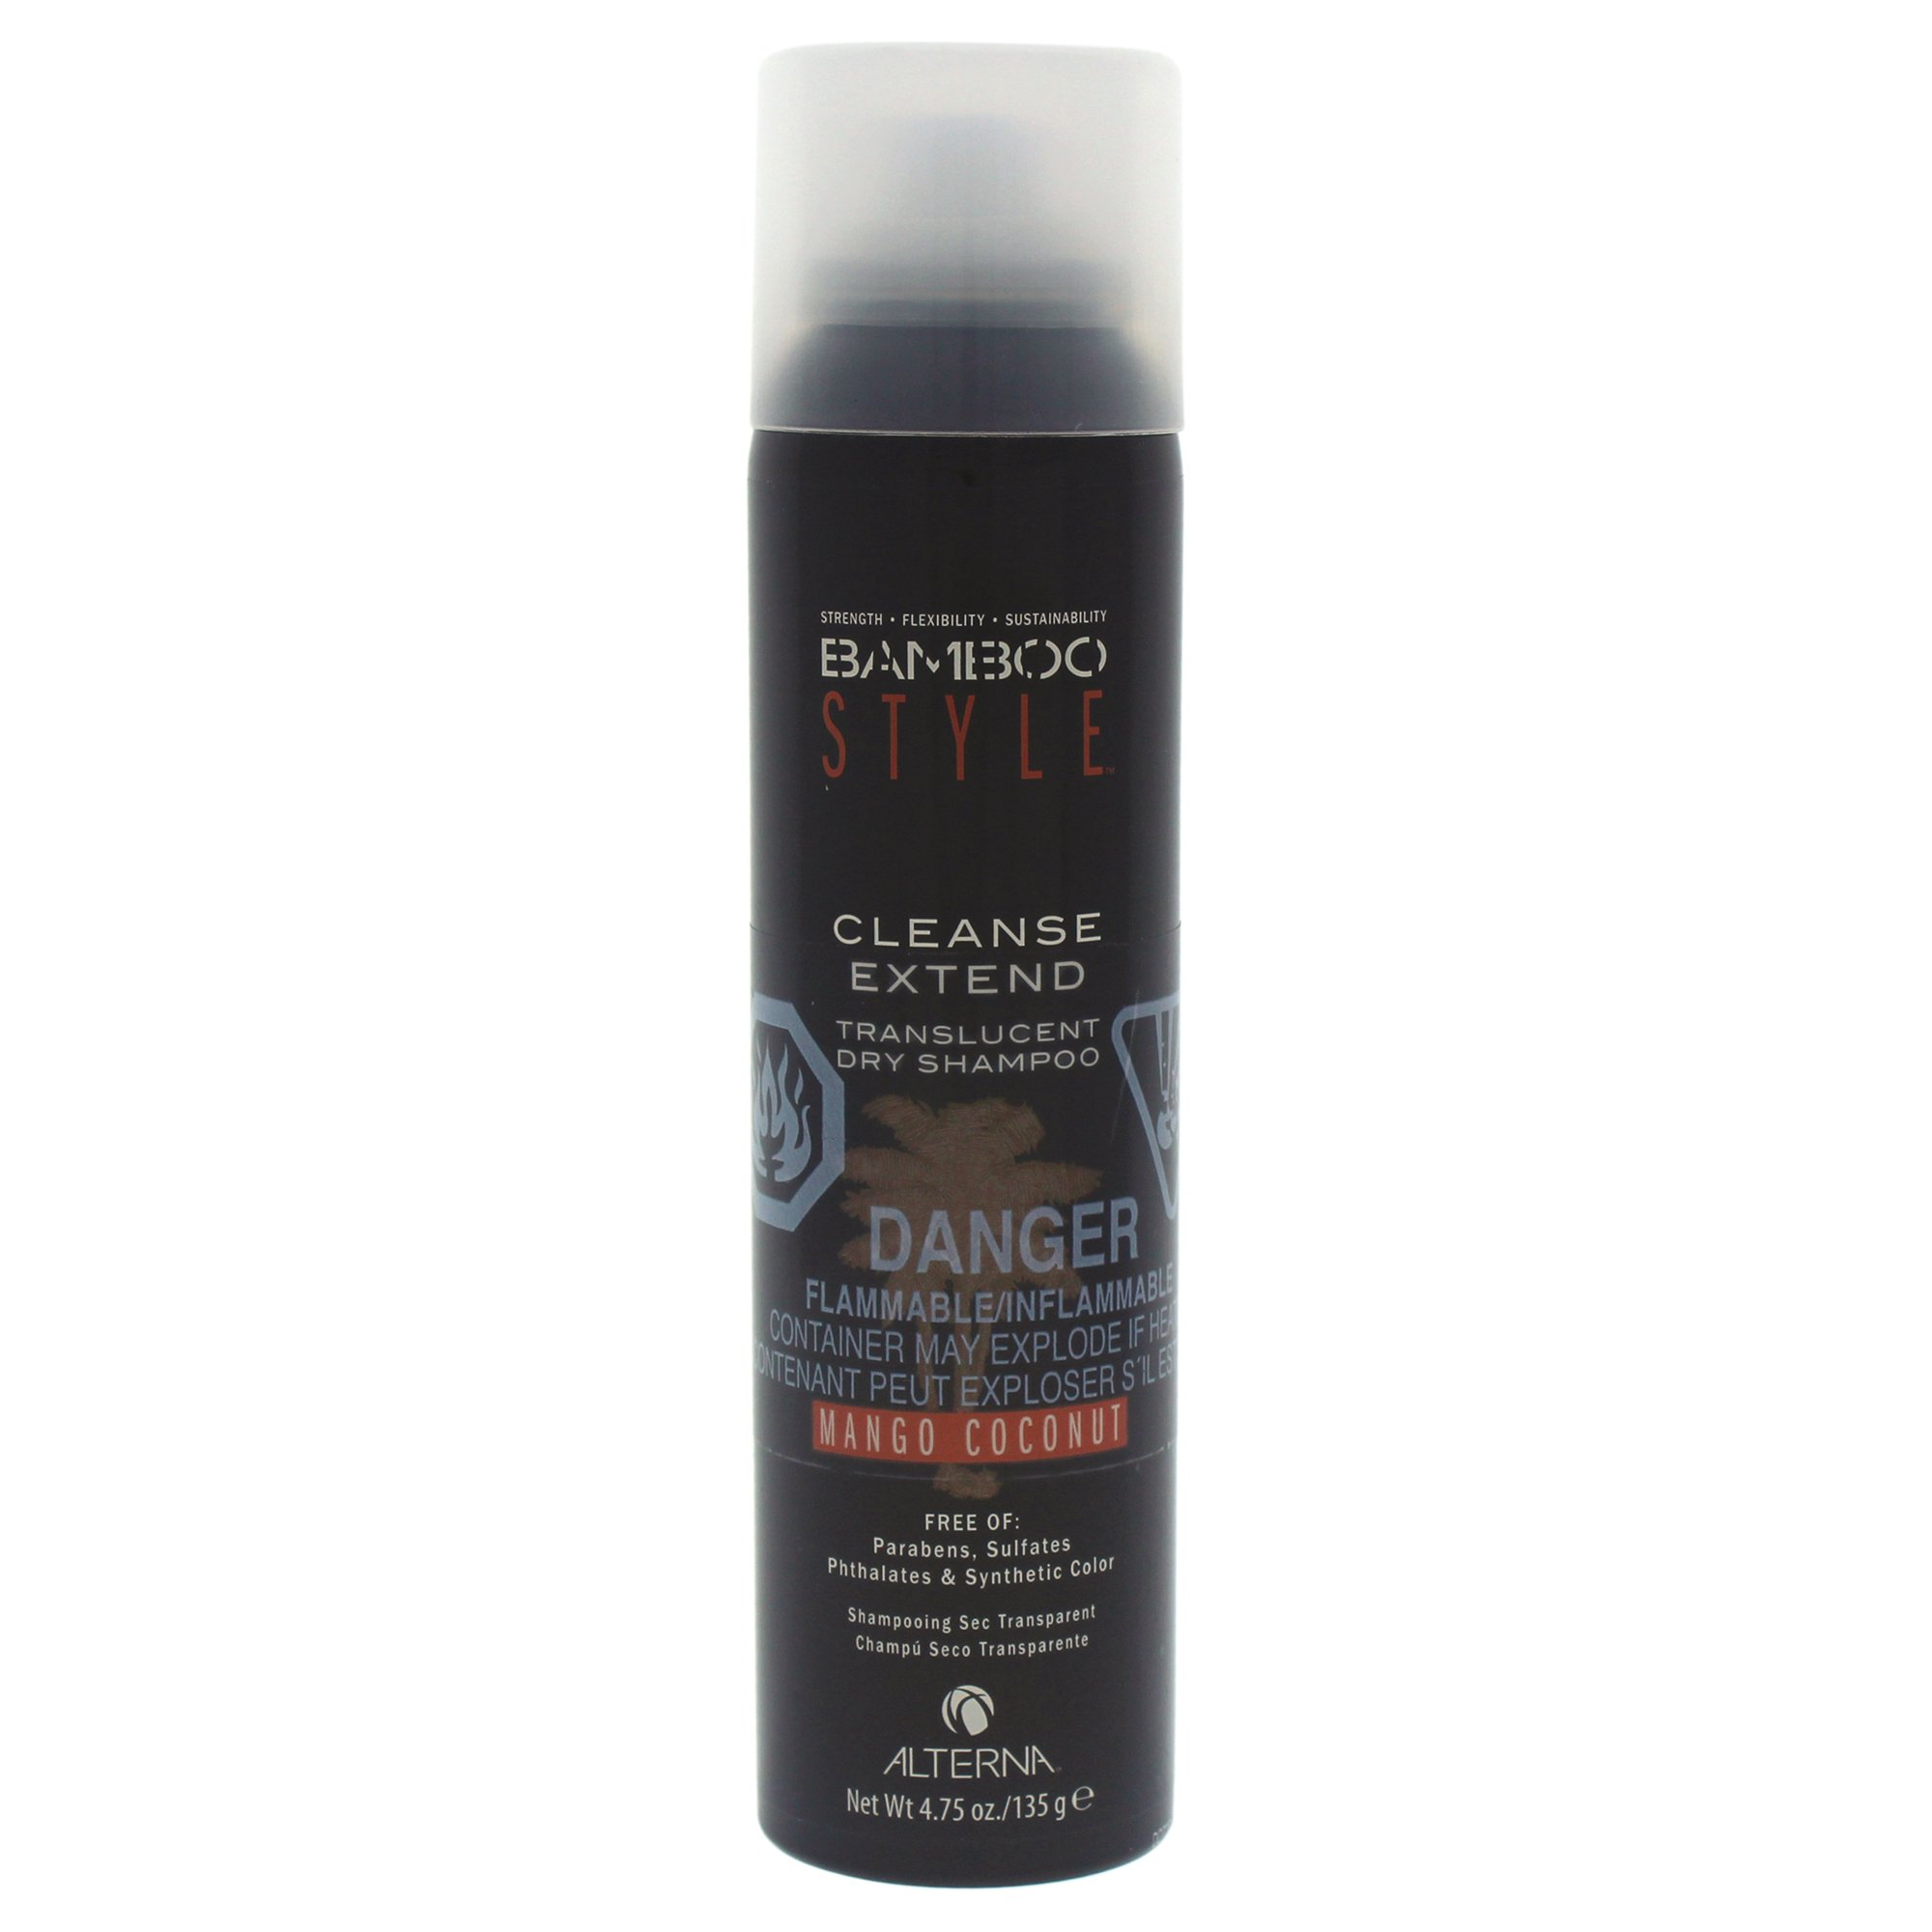 Alterna Bamboo Style Cleanse Extend Translucent Dry Shampoo Mango Coconut for Unisex, 4.75 Ounce